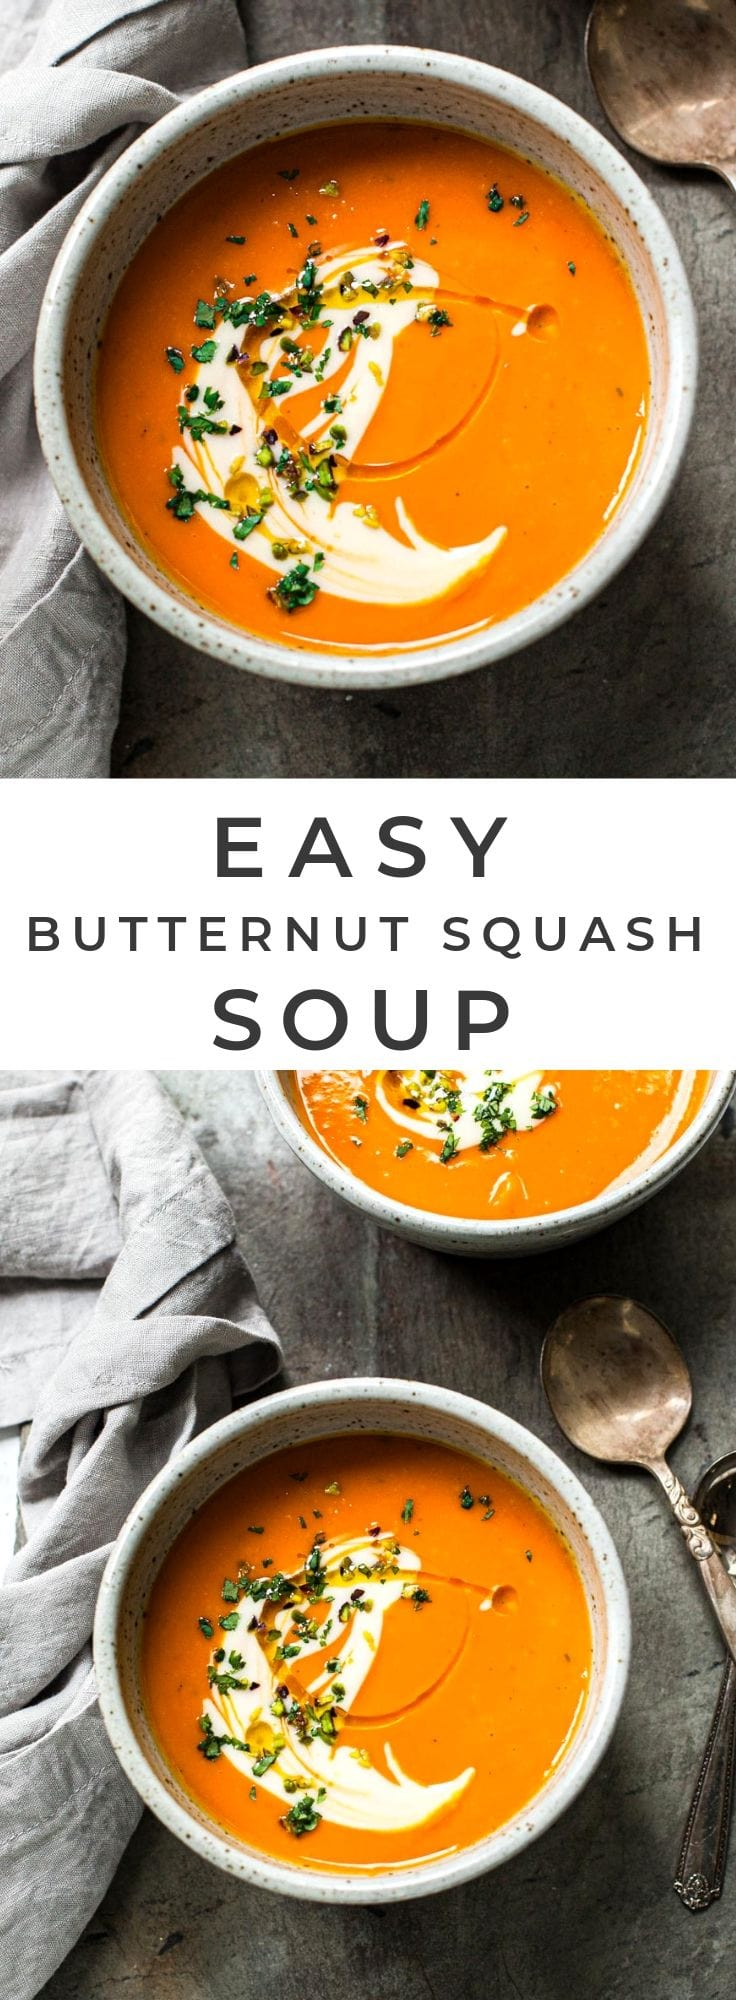 Creamy, Dreamy Vegan Butternut Squash Soup with Ginger and Orange #easy #recipe